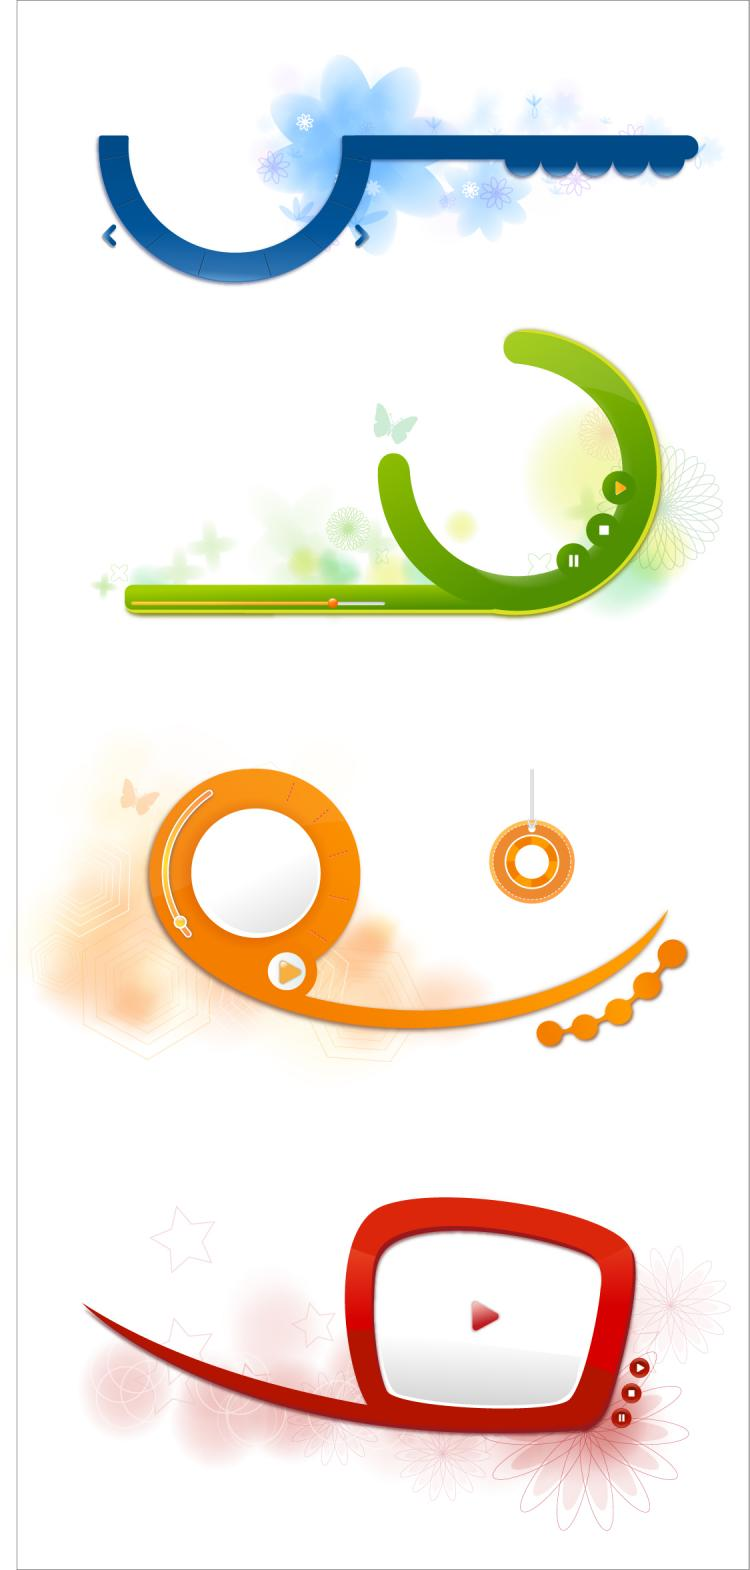 simple graphics vector 25 free vector 4vector rh 4vector com free vector graphics download cdr file free vector graphics download cdr